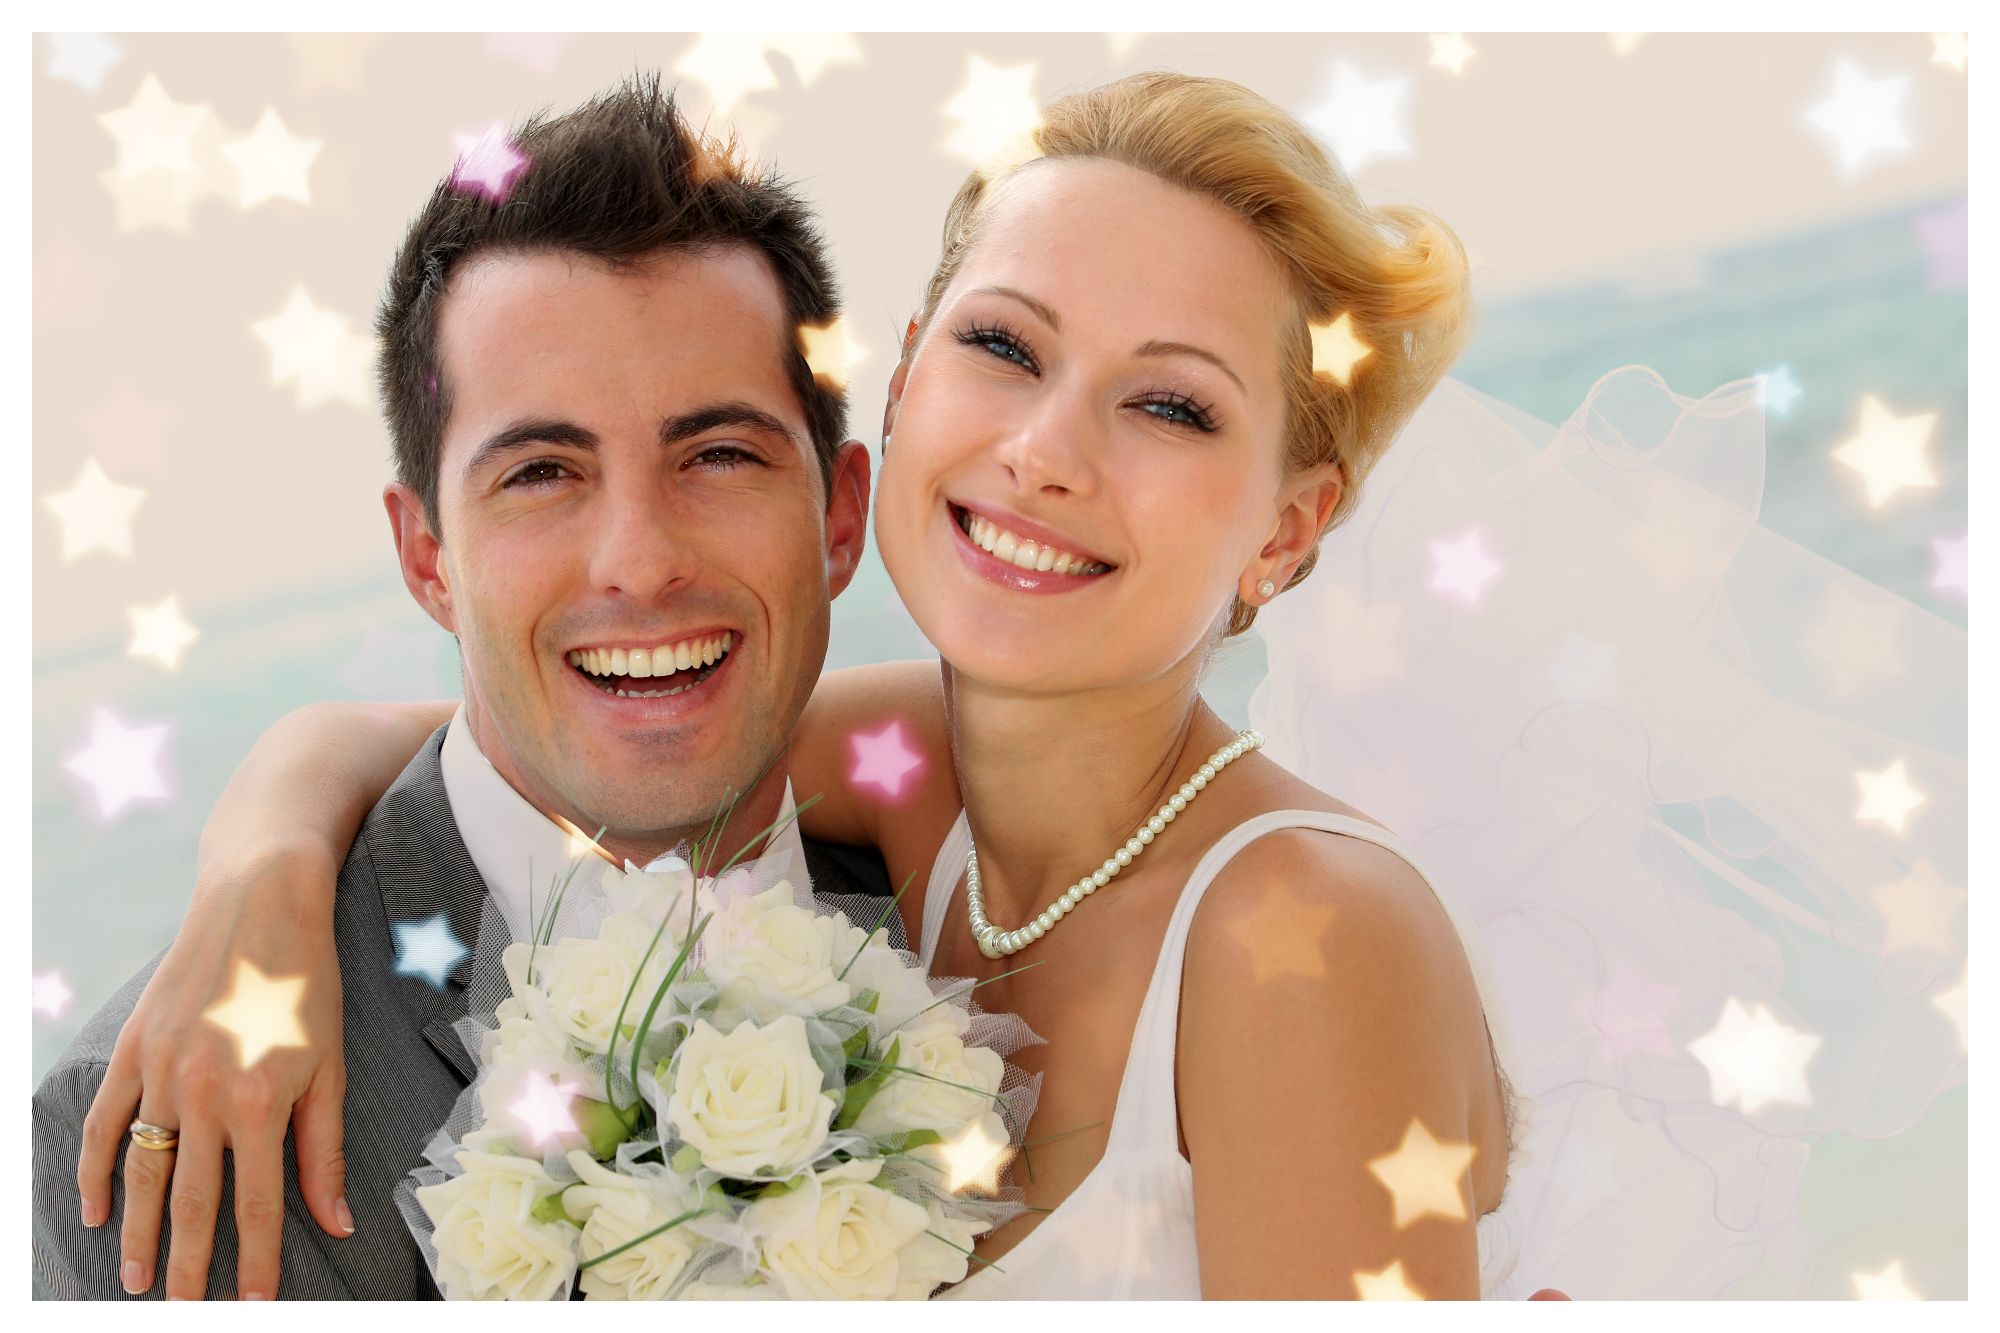 Wedding photo card with bokeh effect applied online